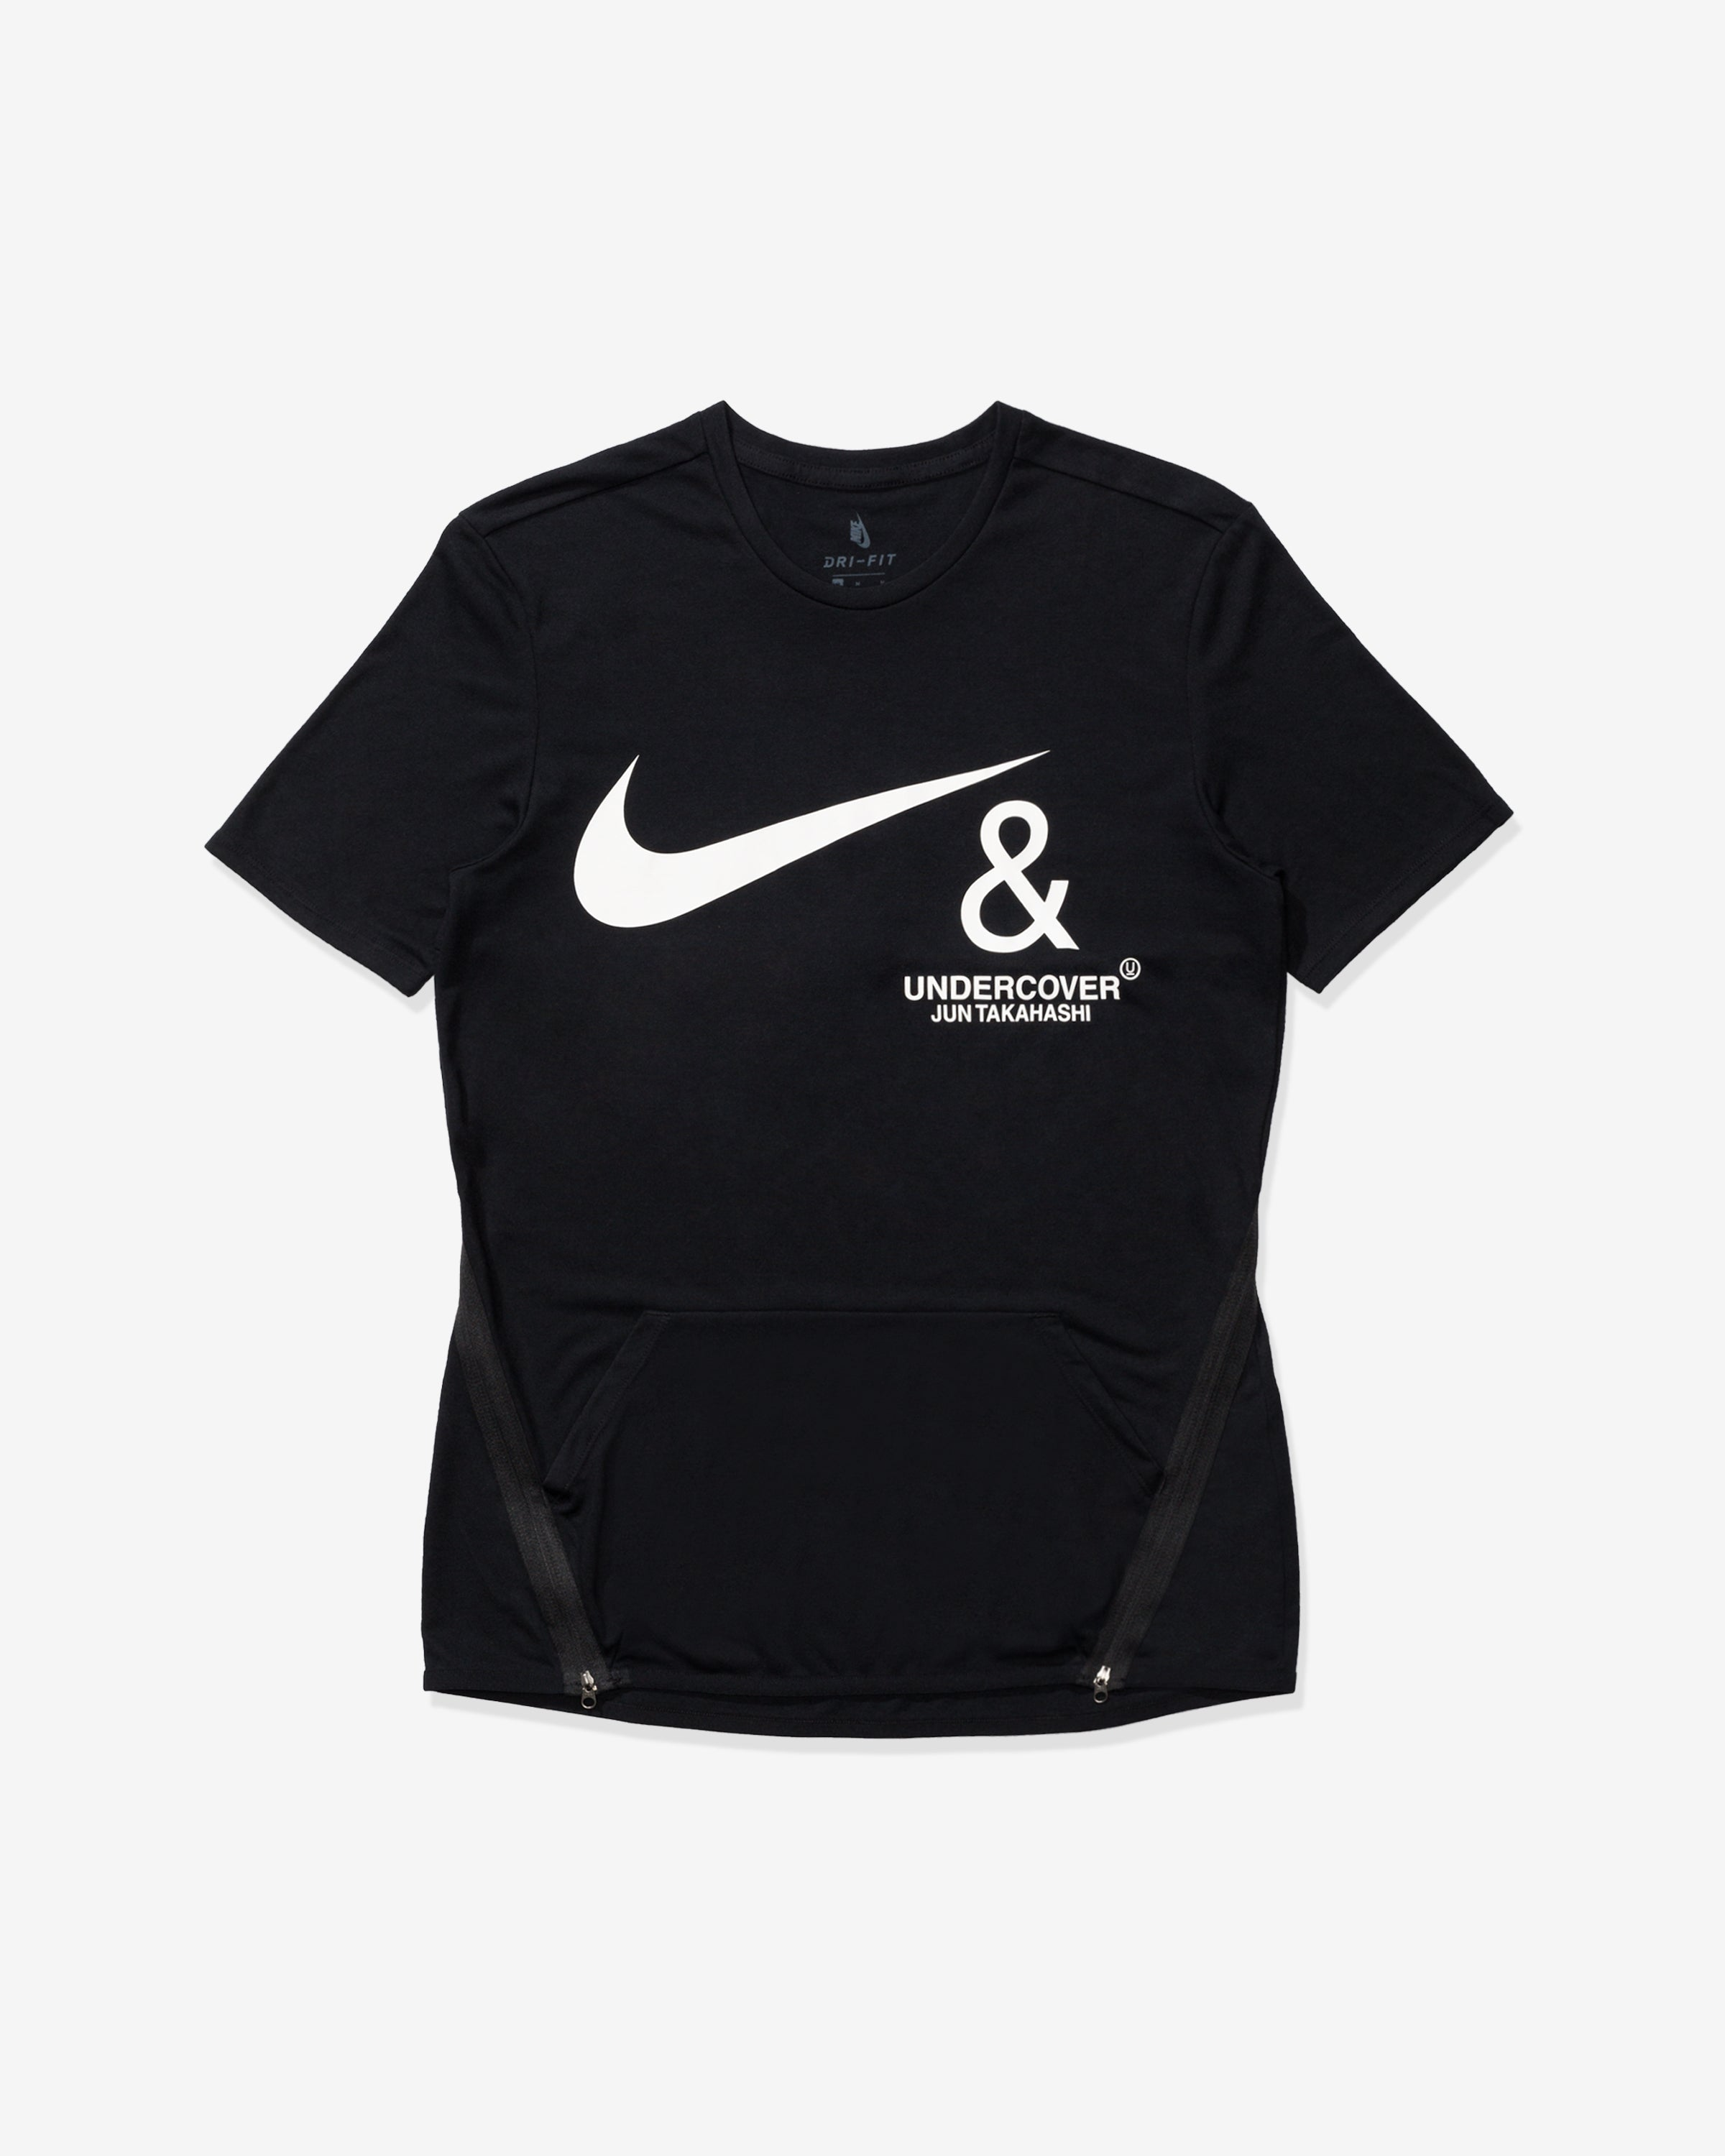 NIKE X UNDERCOVER NRG TC TOP SS POCKET - BLACK/WHITE